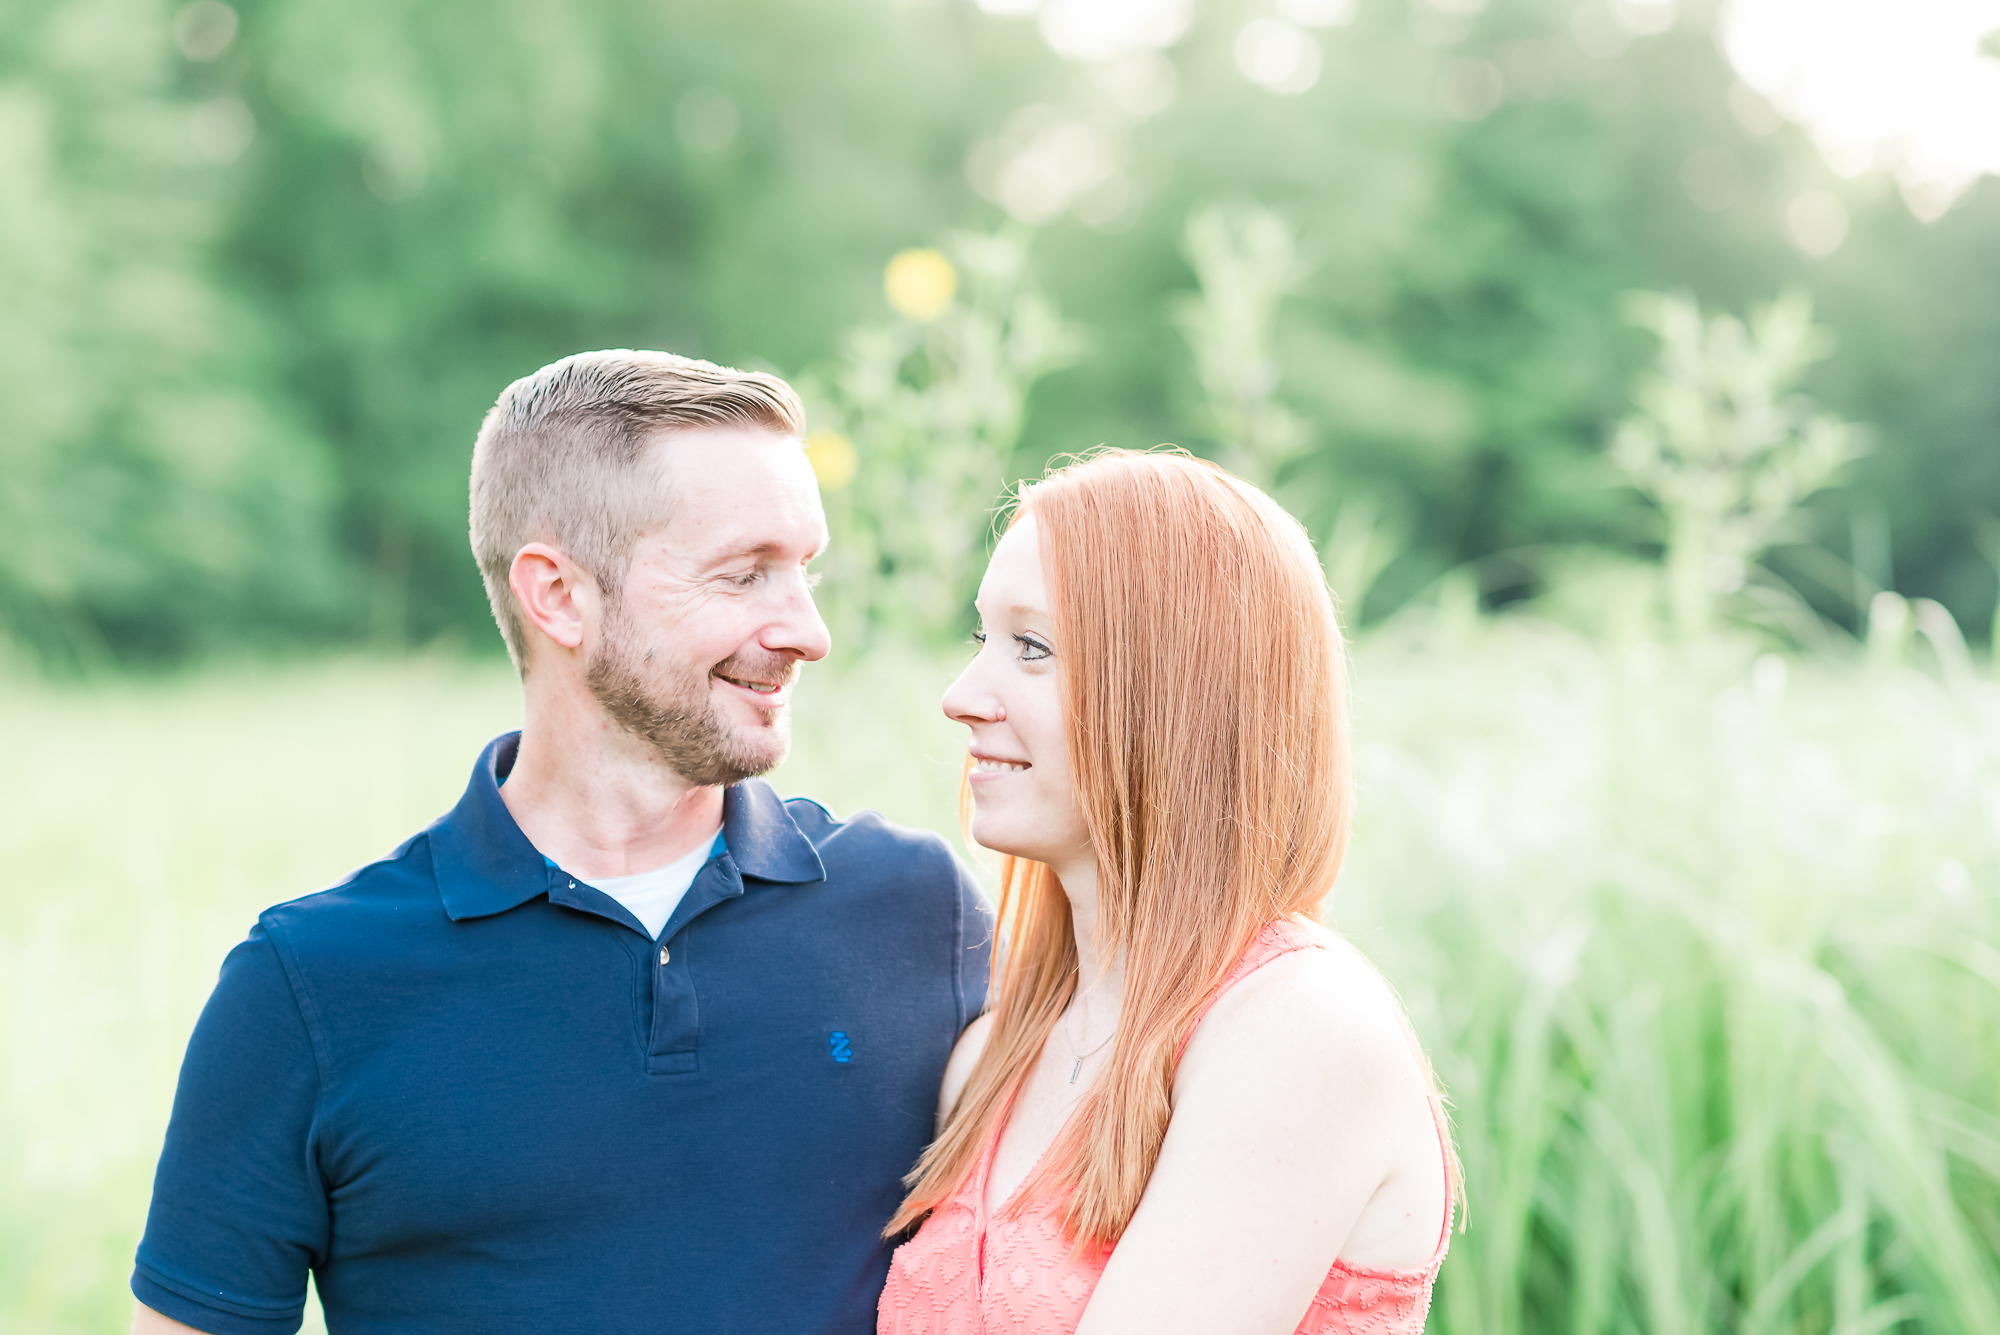 AB Favorites_Katy+Brian_Engagement Session_Brecksville Reservation_Brecksville_Ohio-36.jpg